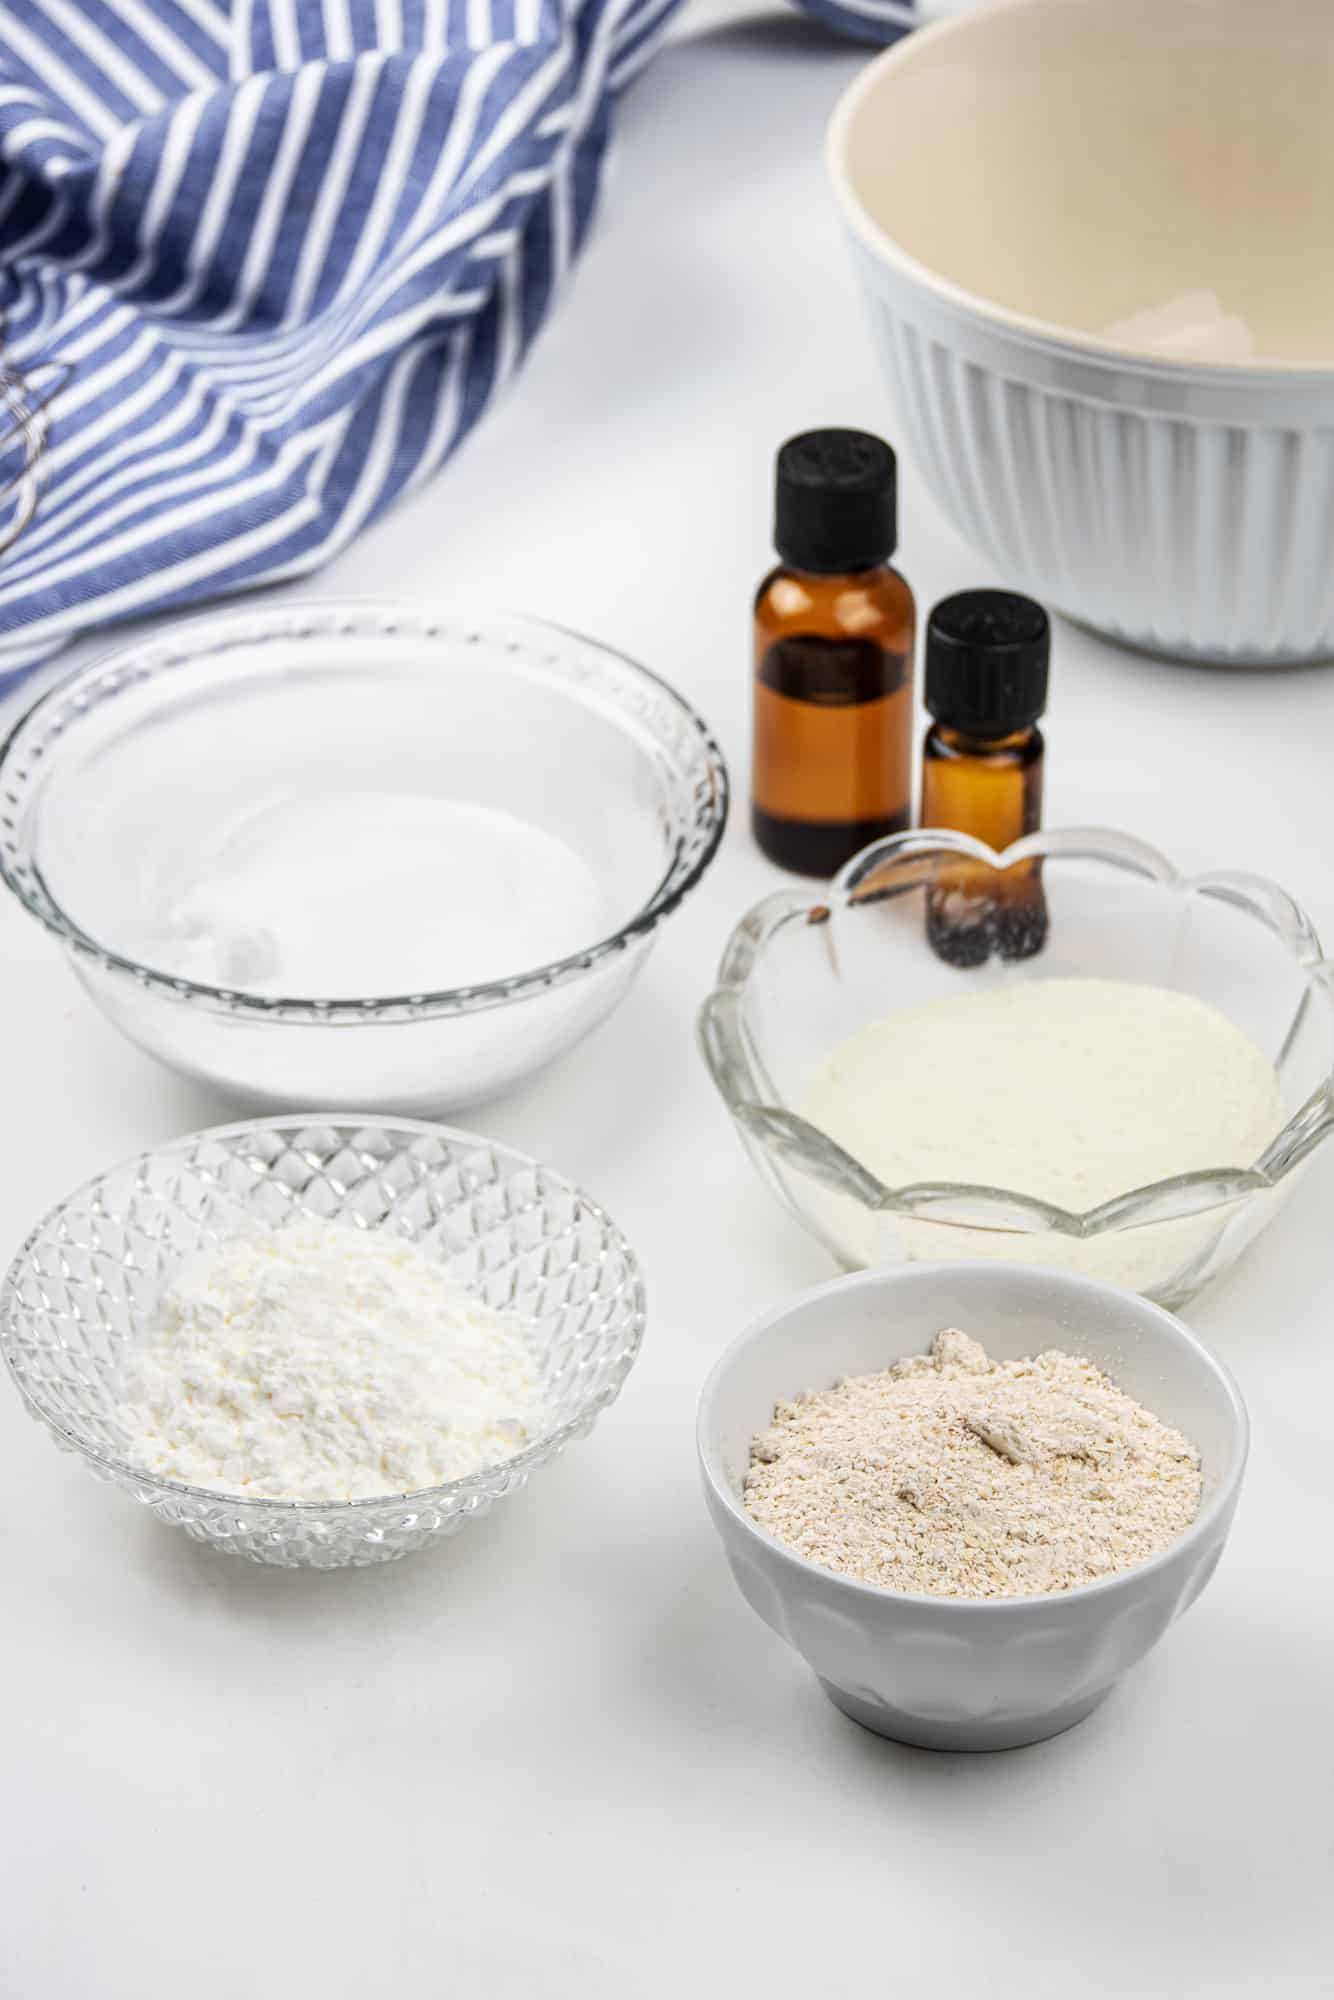 ingredients to oatmeal bath in small glass bowls with essential oils.